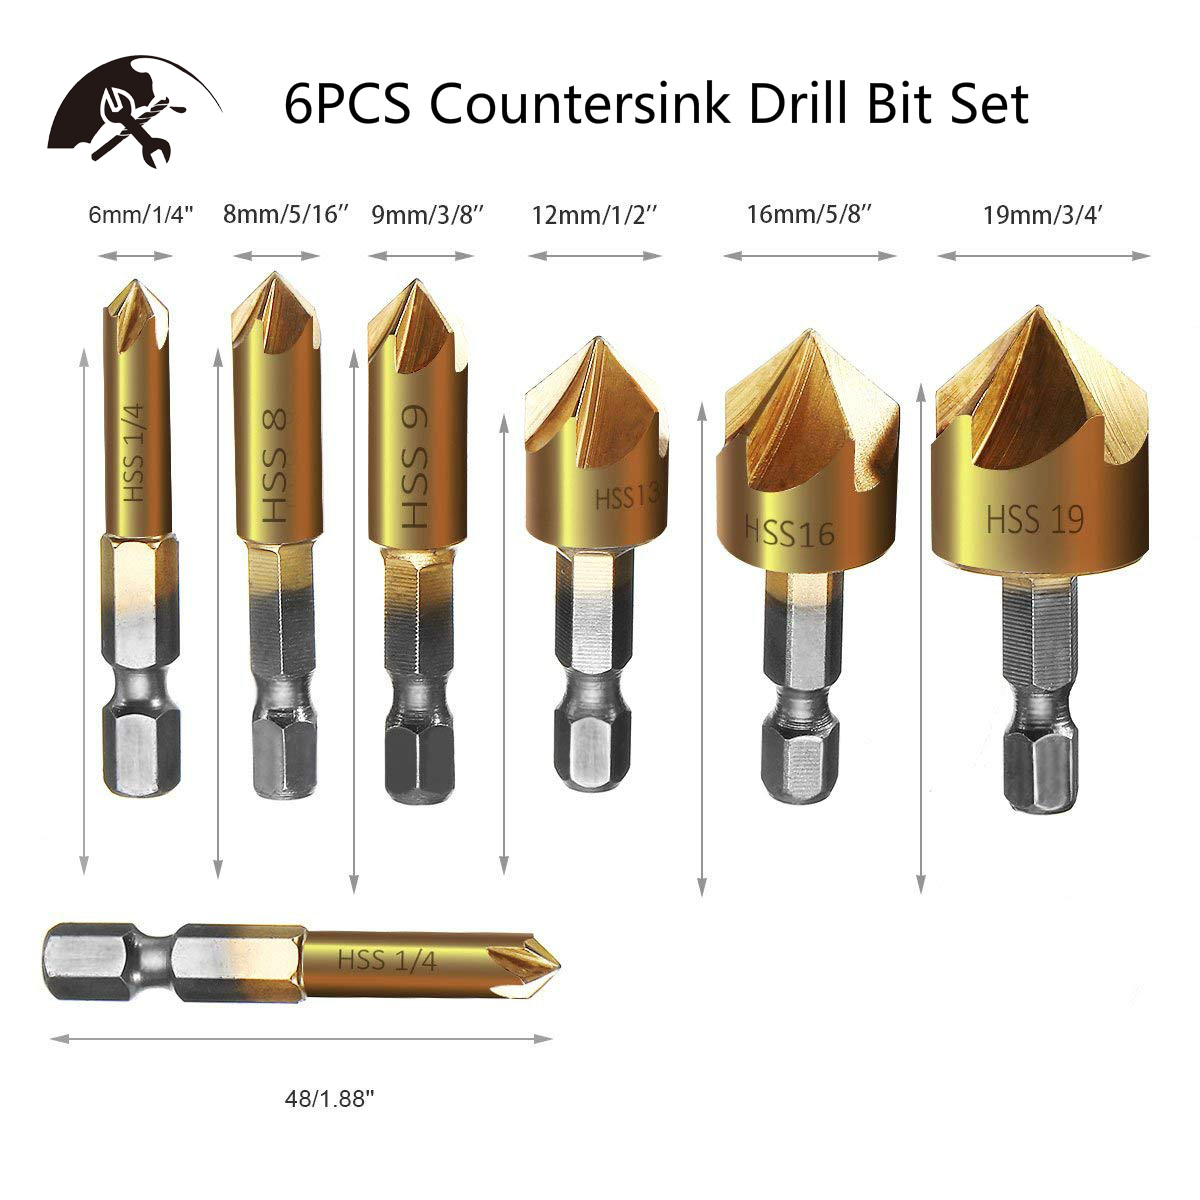 6PCS Countersink Drill Bit Set 1/4'' Hex Shank HSS 5 Flute Countersink 90 Degree Center Punch Tool Sets Wood Chamfering Cutter